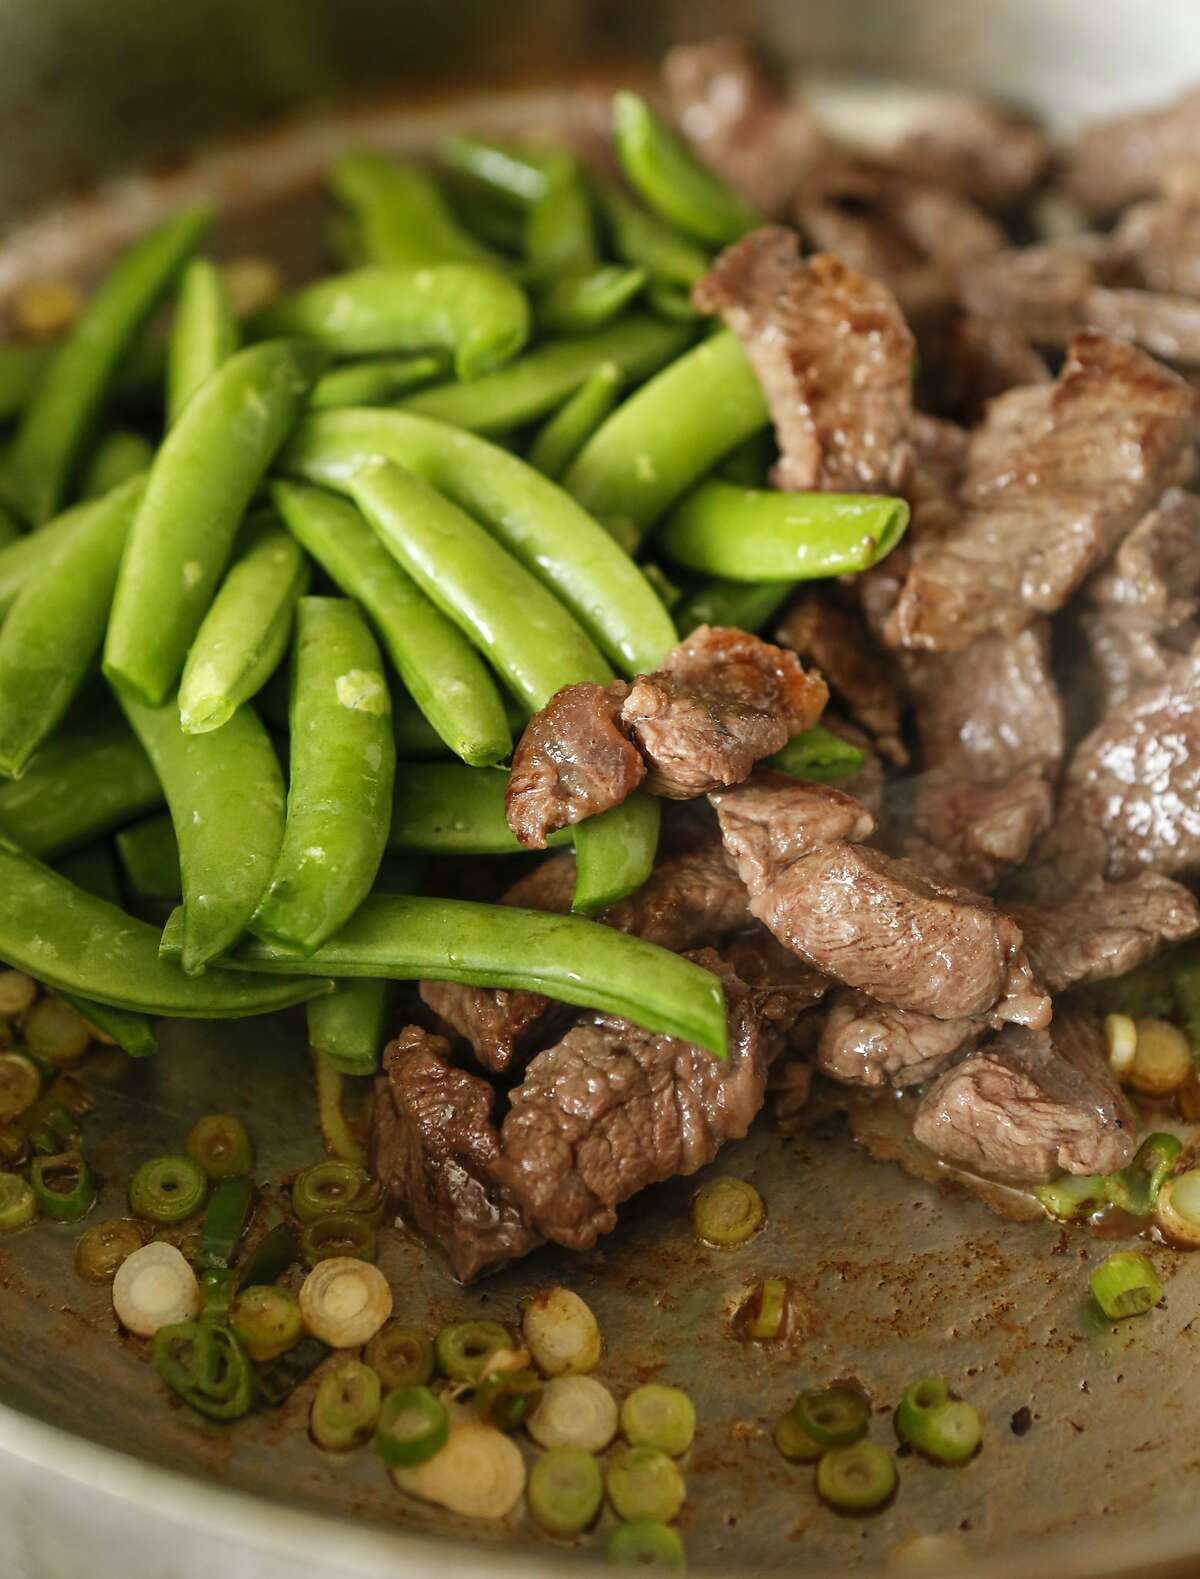 Steak and spring vegetable saute is seen in the pan on Wednesday, April 22, 2015 in San Francisco, Calif.